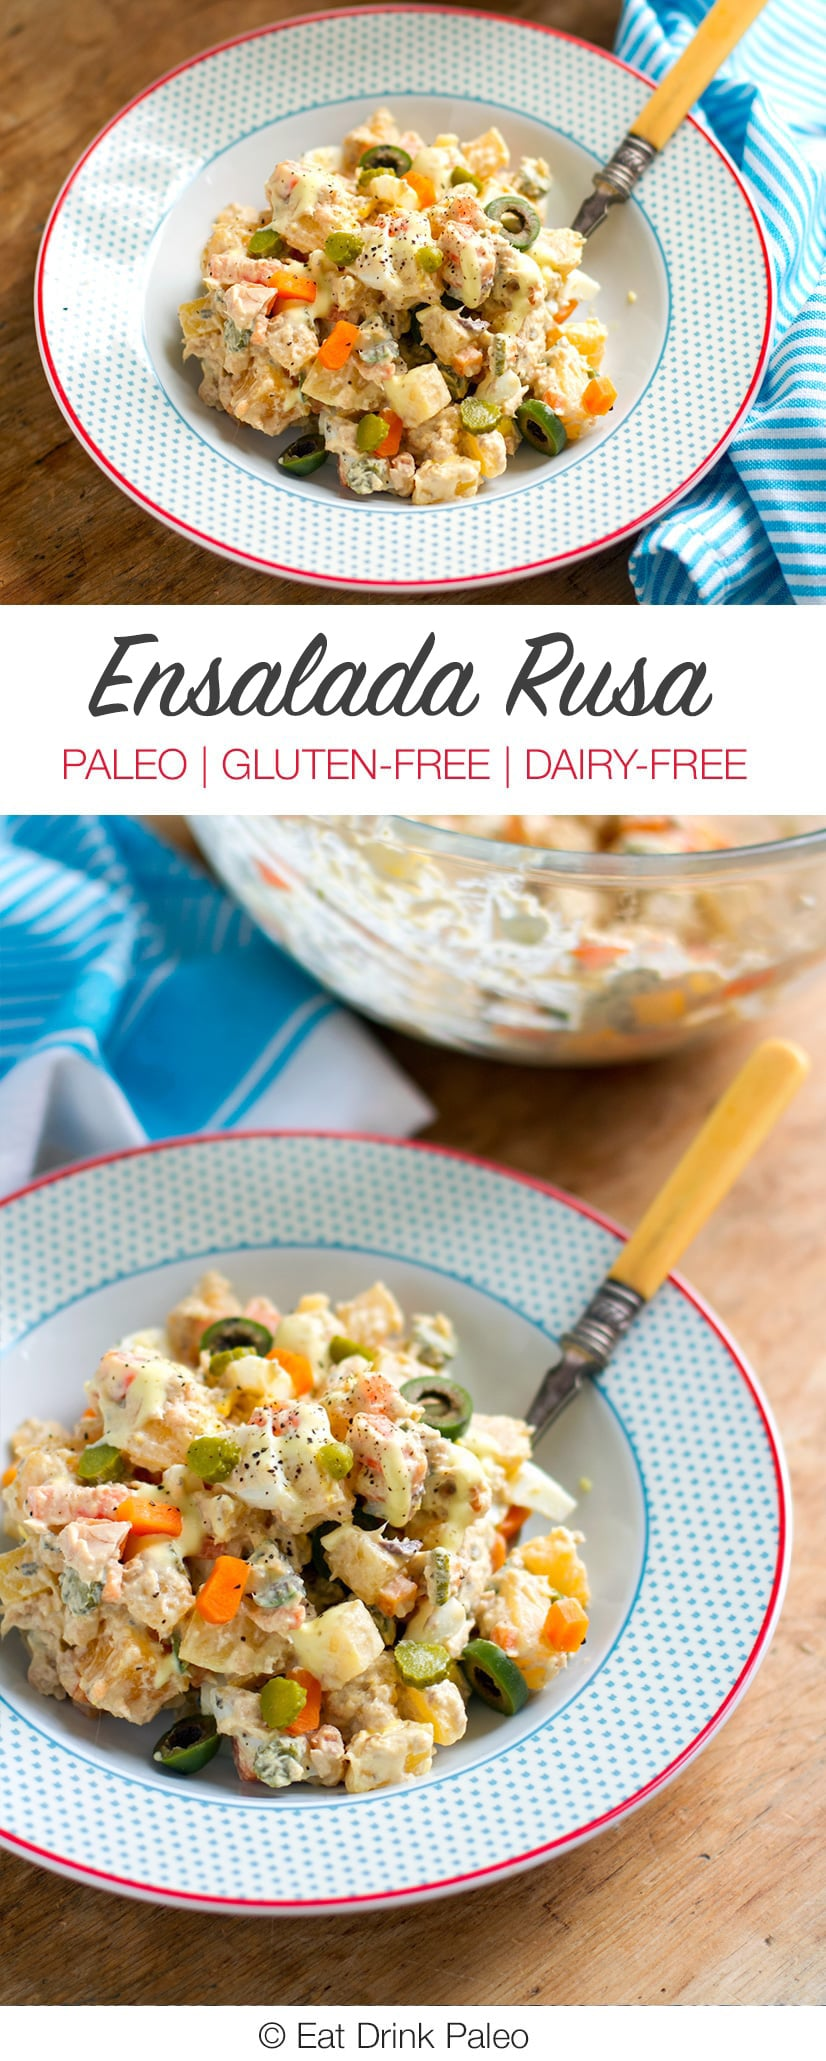 Ensalada Rusa Recipe - Gluten-free, Dairy-free, Paleo friendly potato salad.